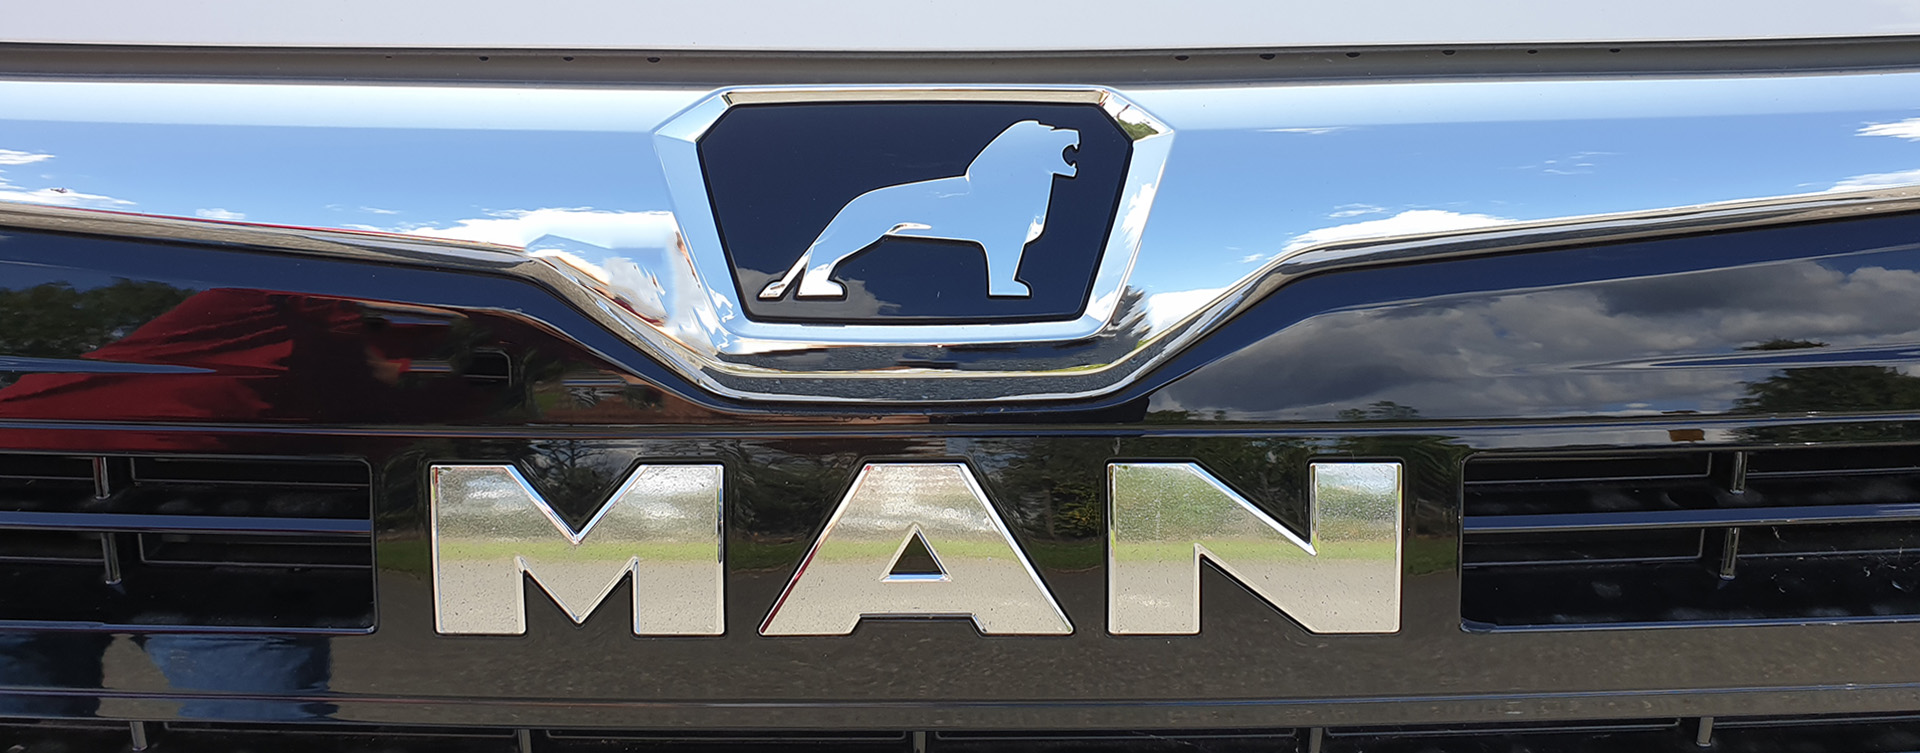 Photo of MAN grill badge